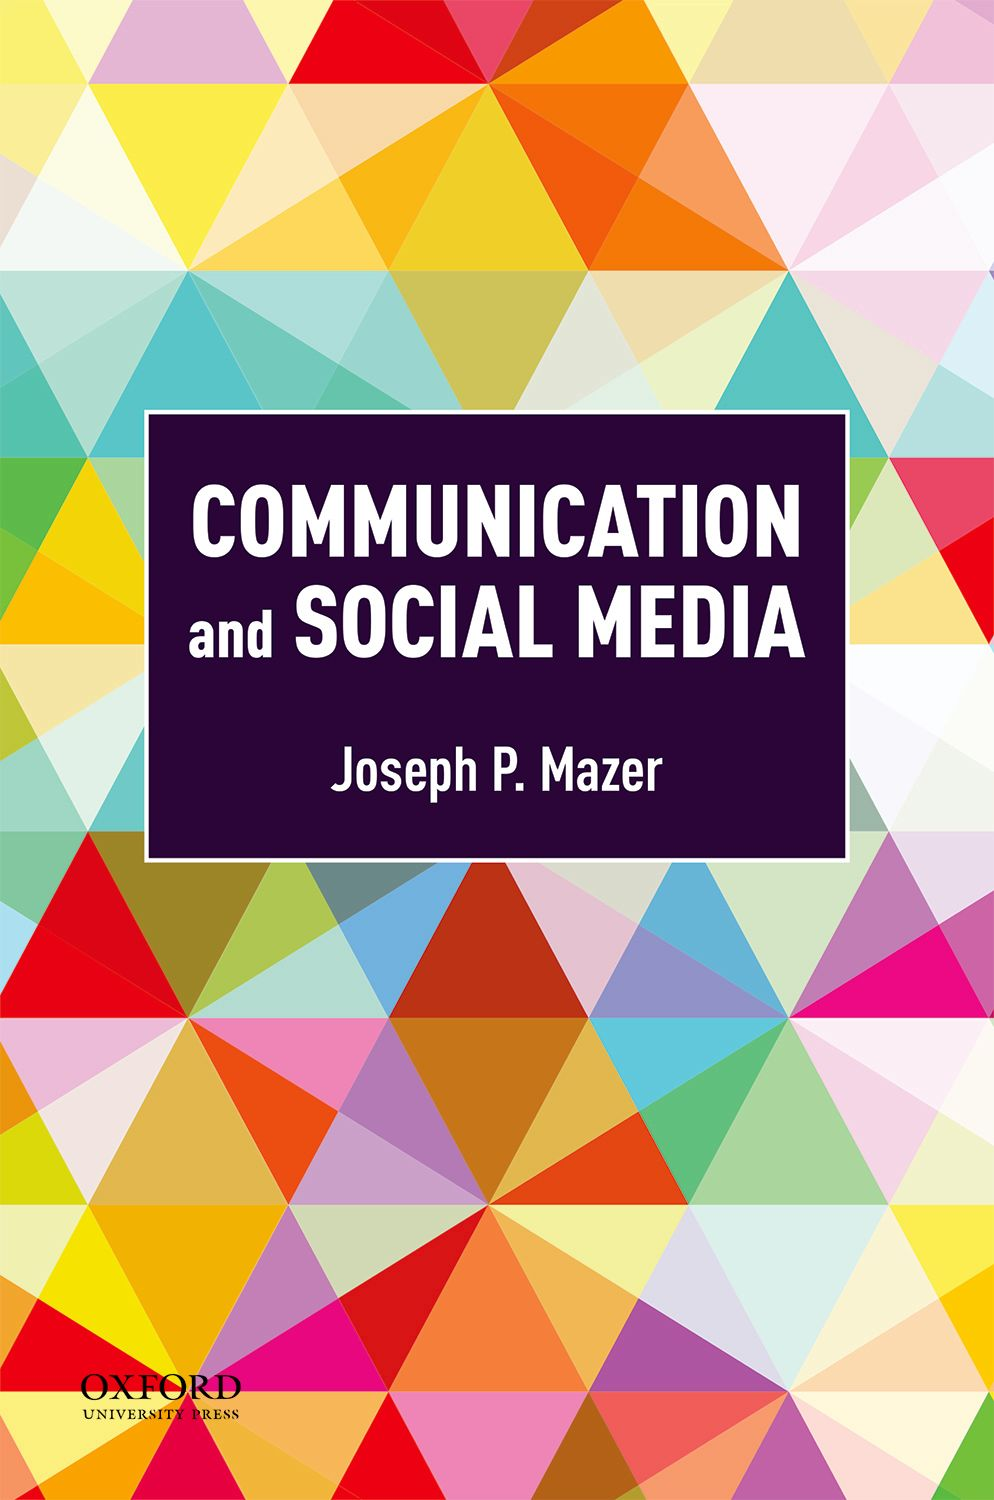 Communication and Social Media